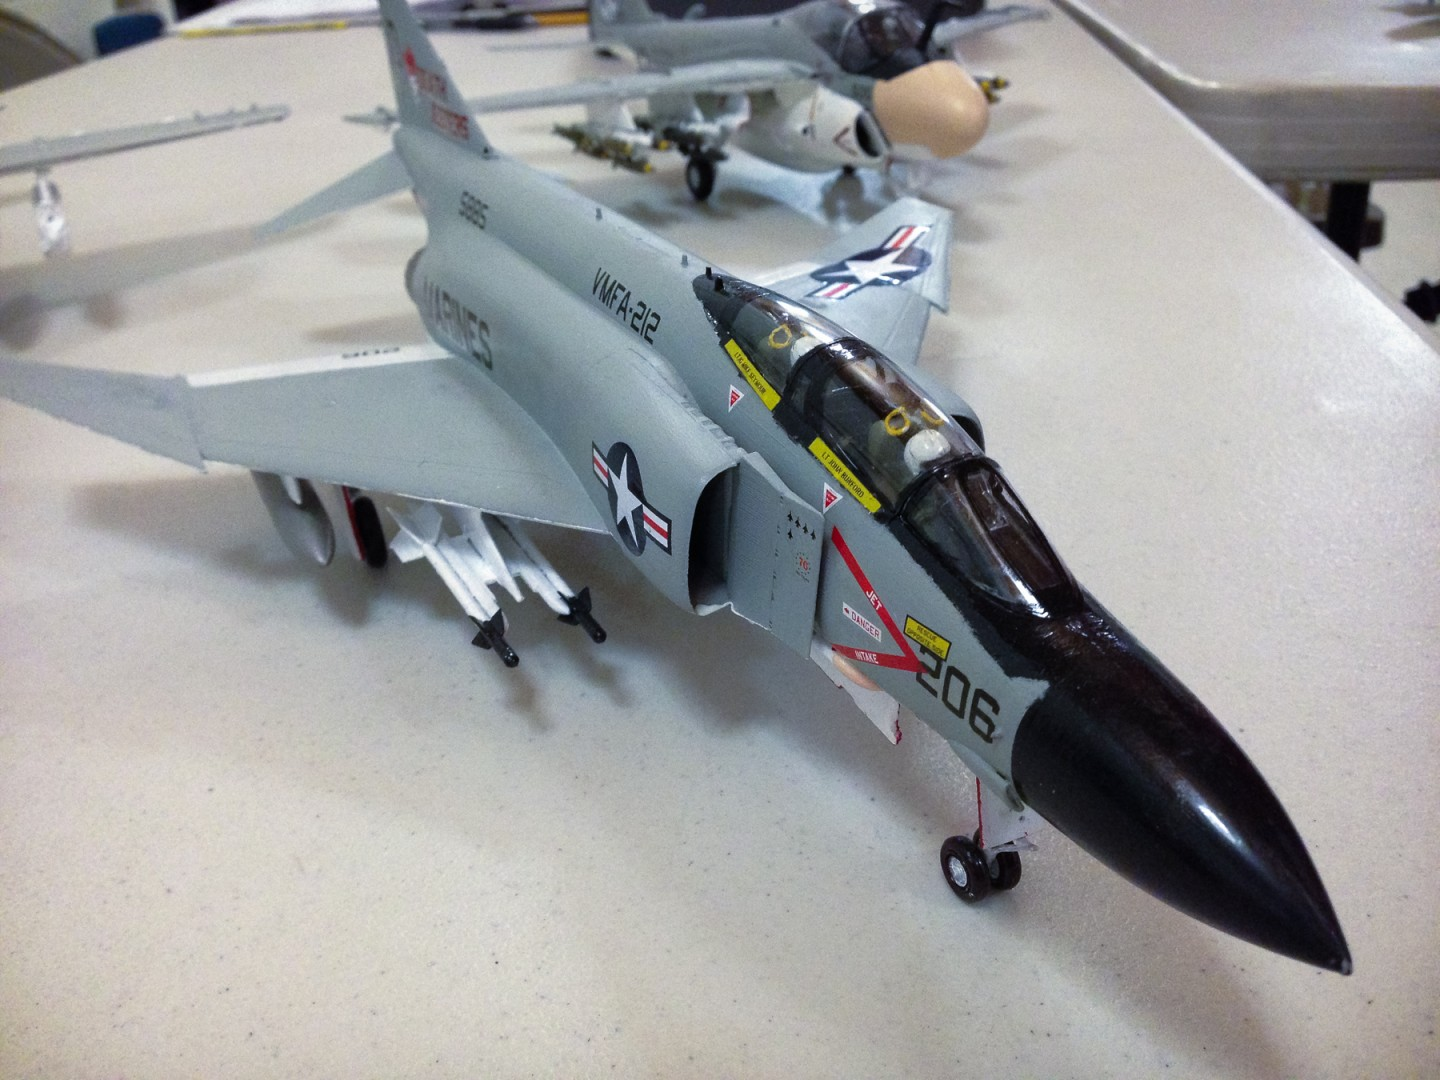 Brian Nerino's F-4 Phantom on the show and tell table at the January 2013 meeting.